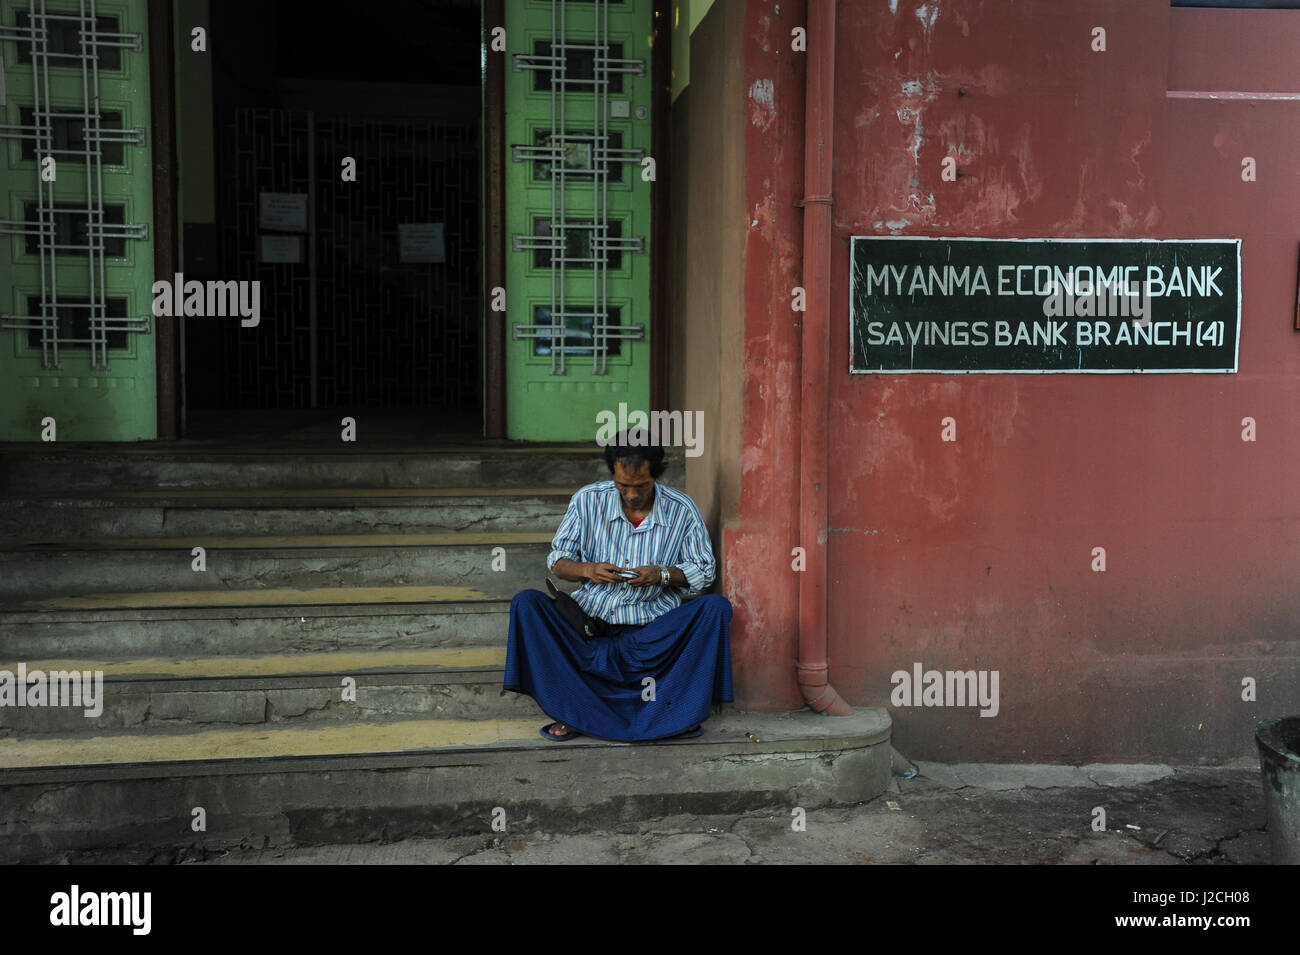 07.10.2013, Yangon, Republic of the Union of Myanmar, Asia - A man is seen sitting on the steps in front of a branch - Stock Image